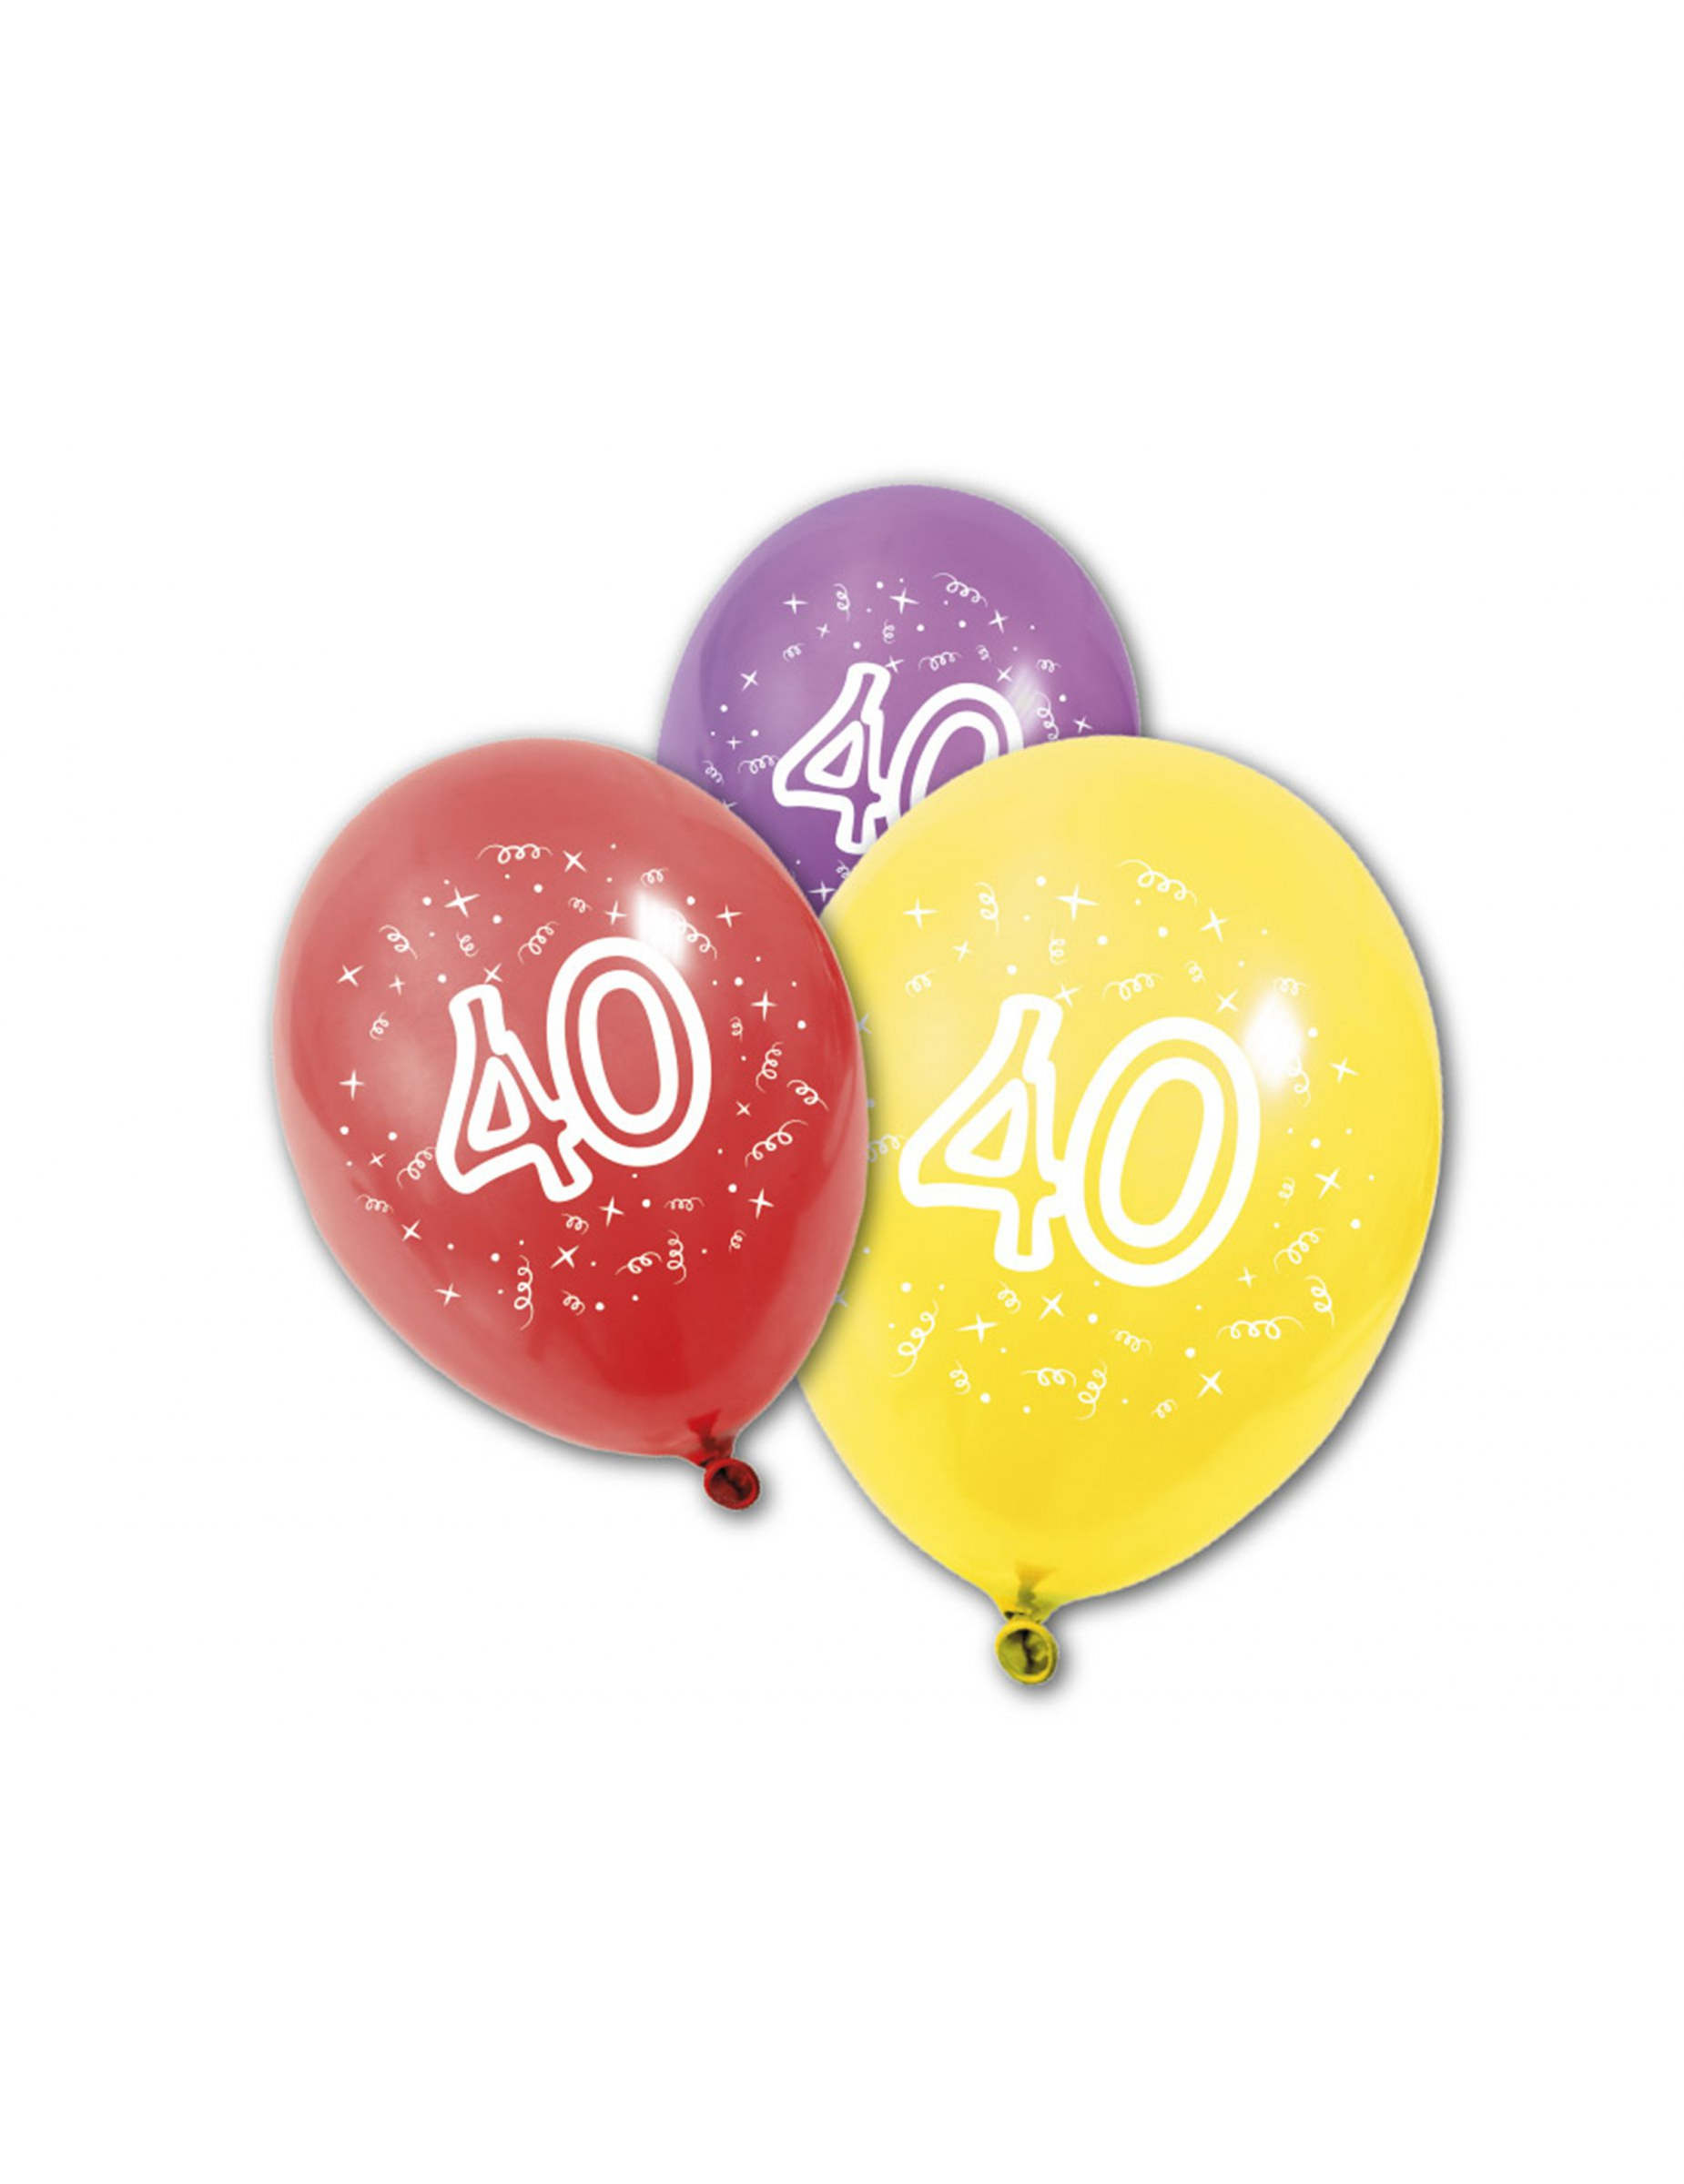 8 ballons en latex anniversaire 40 ans achat de decoration animation sur vegaoopro grossiste. Black Bedroom Furniture Sets. Home Design Ideas